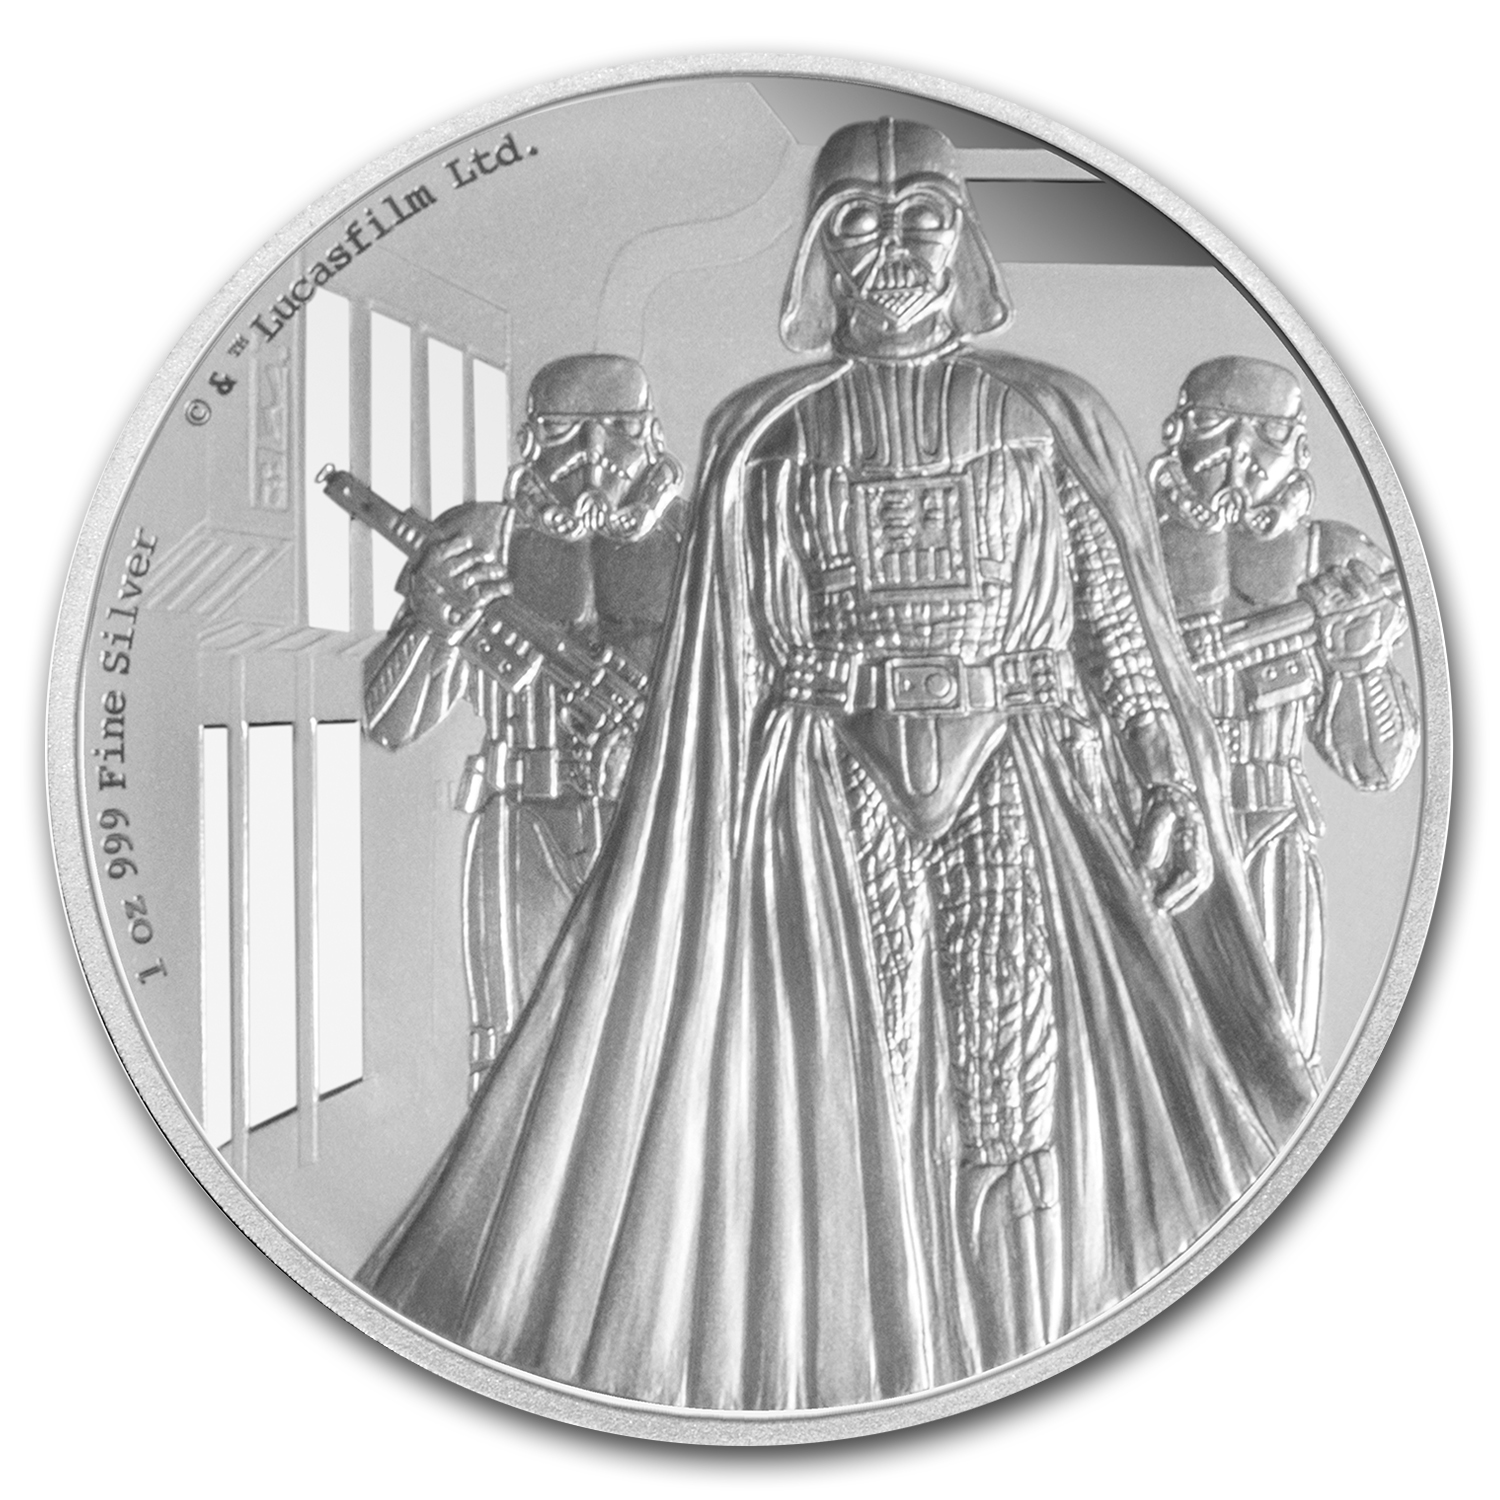 2015 Niue 1 oz Silver $2 Star Wars Darth Vader (w/Box & COA)